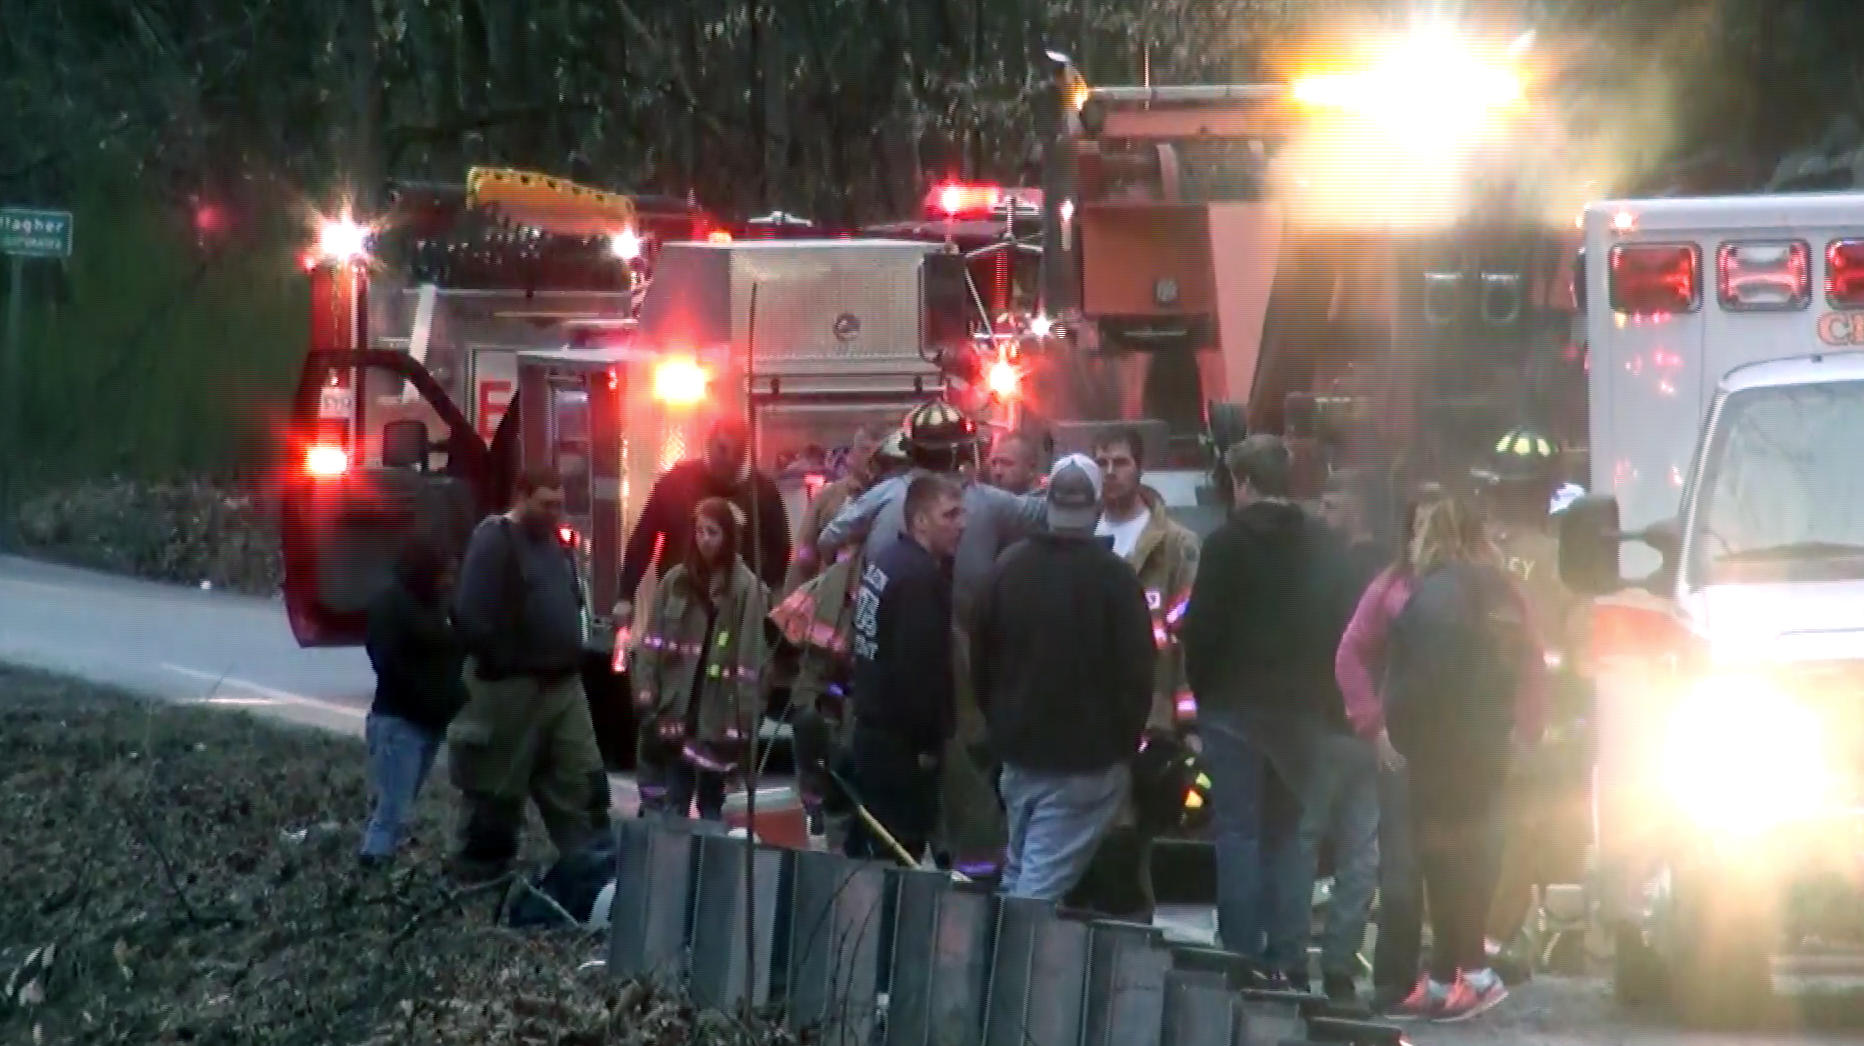 2 West Virginia firefighters among victims in deadly crashes